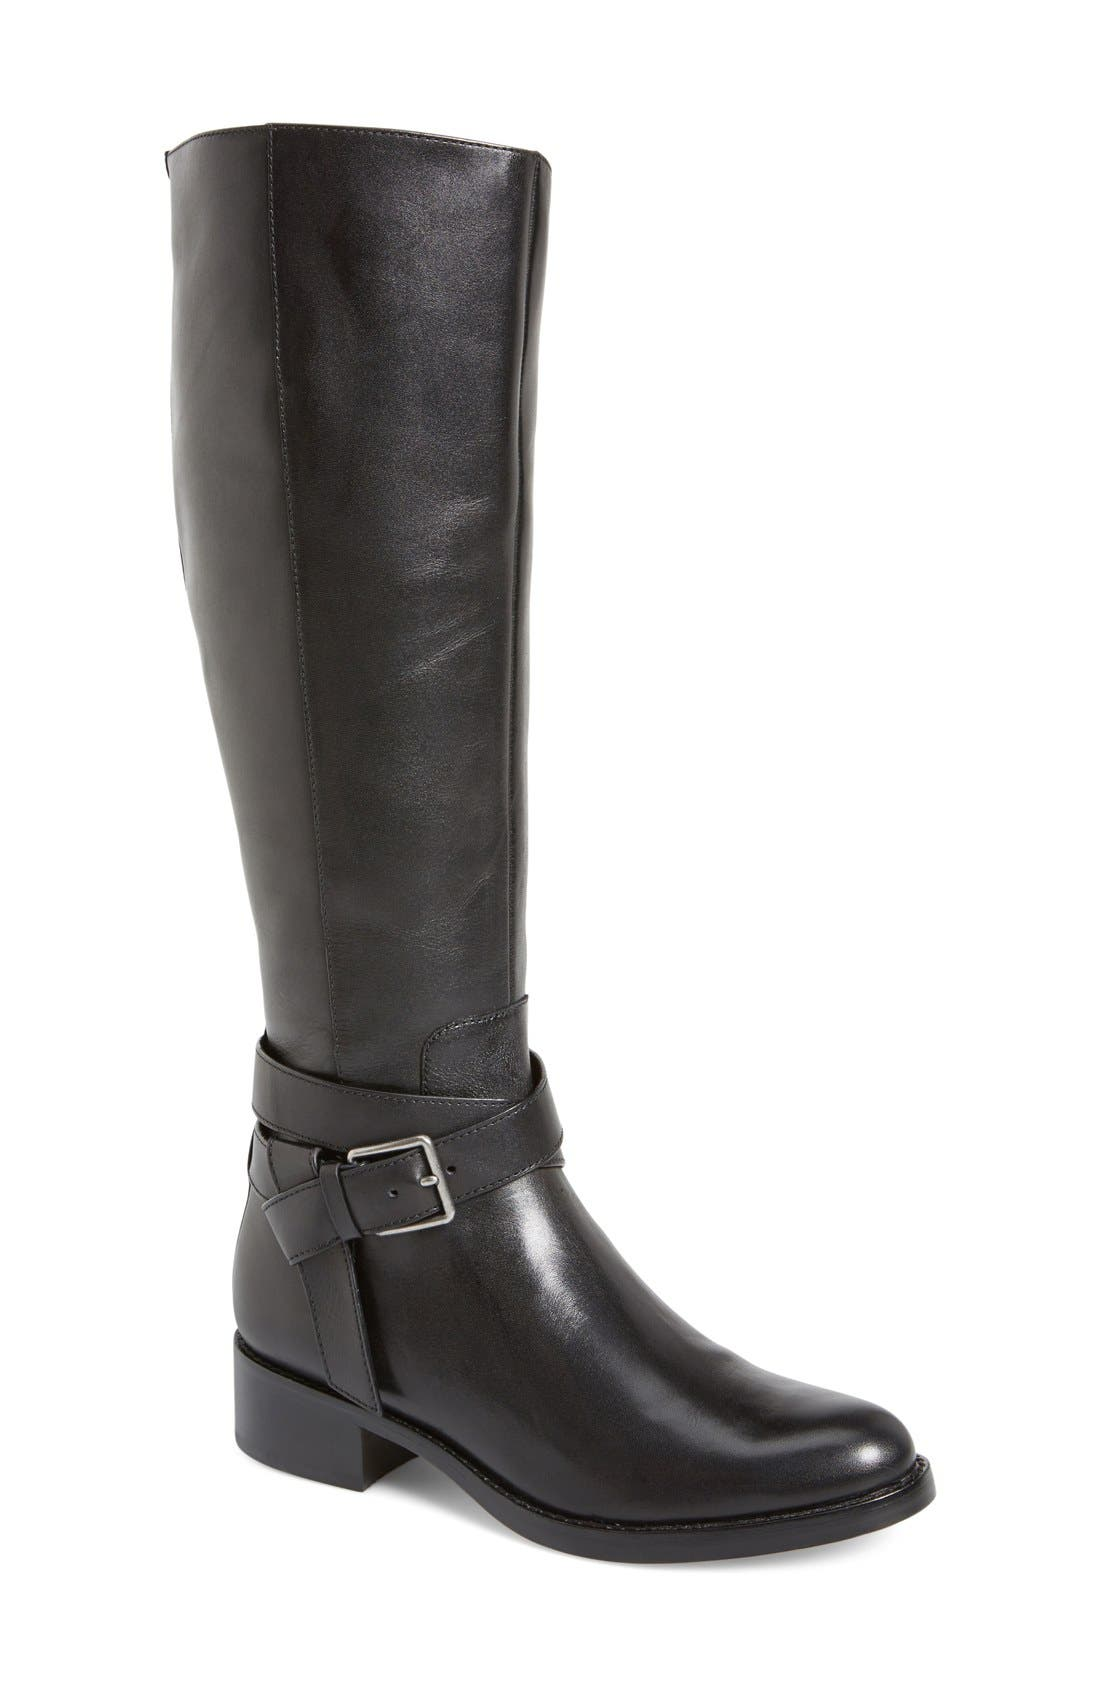 COLE HAAN,                             'Briarcliff' Riding Boot,                             Main thumbnail 1, color,                             001